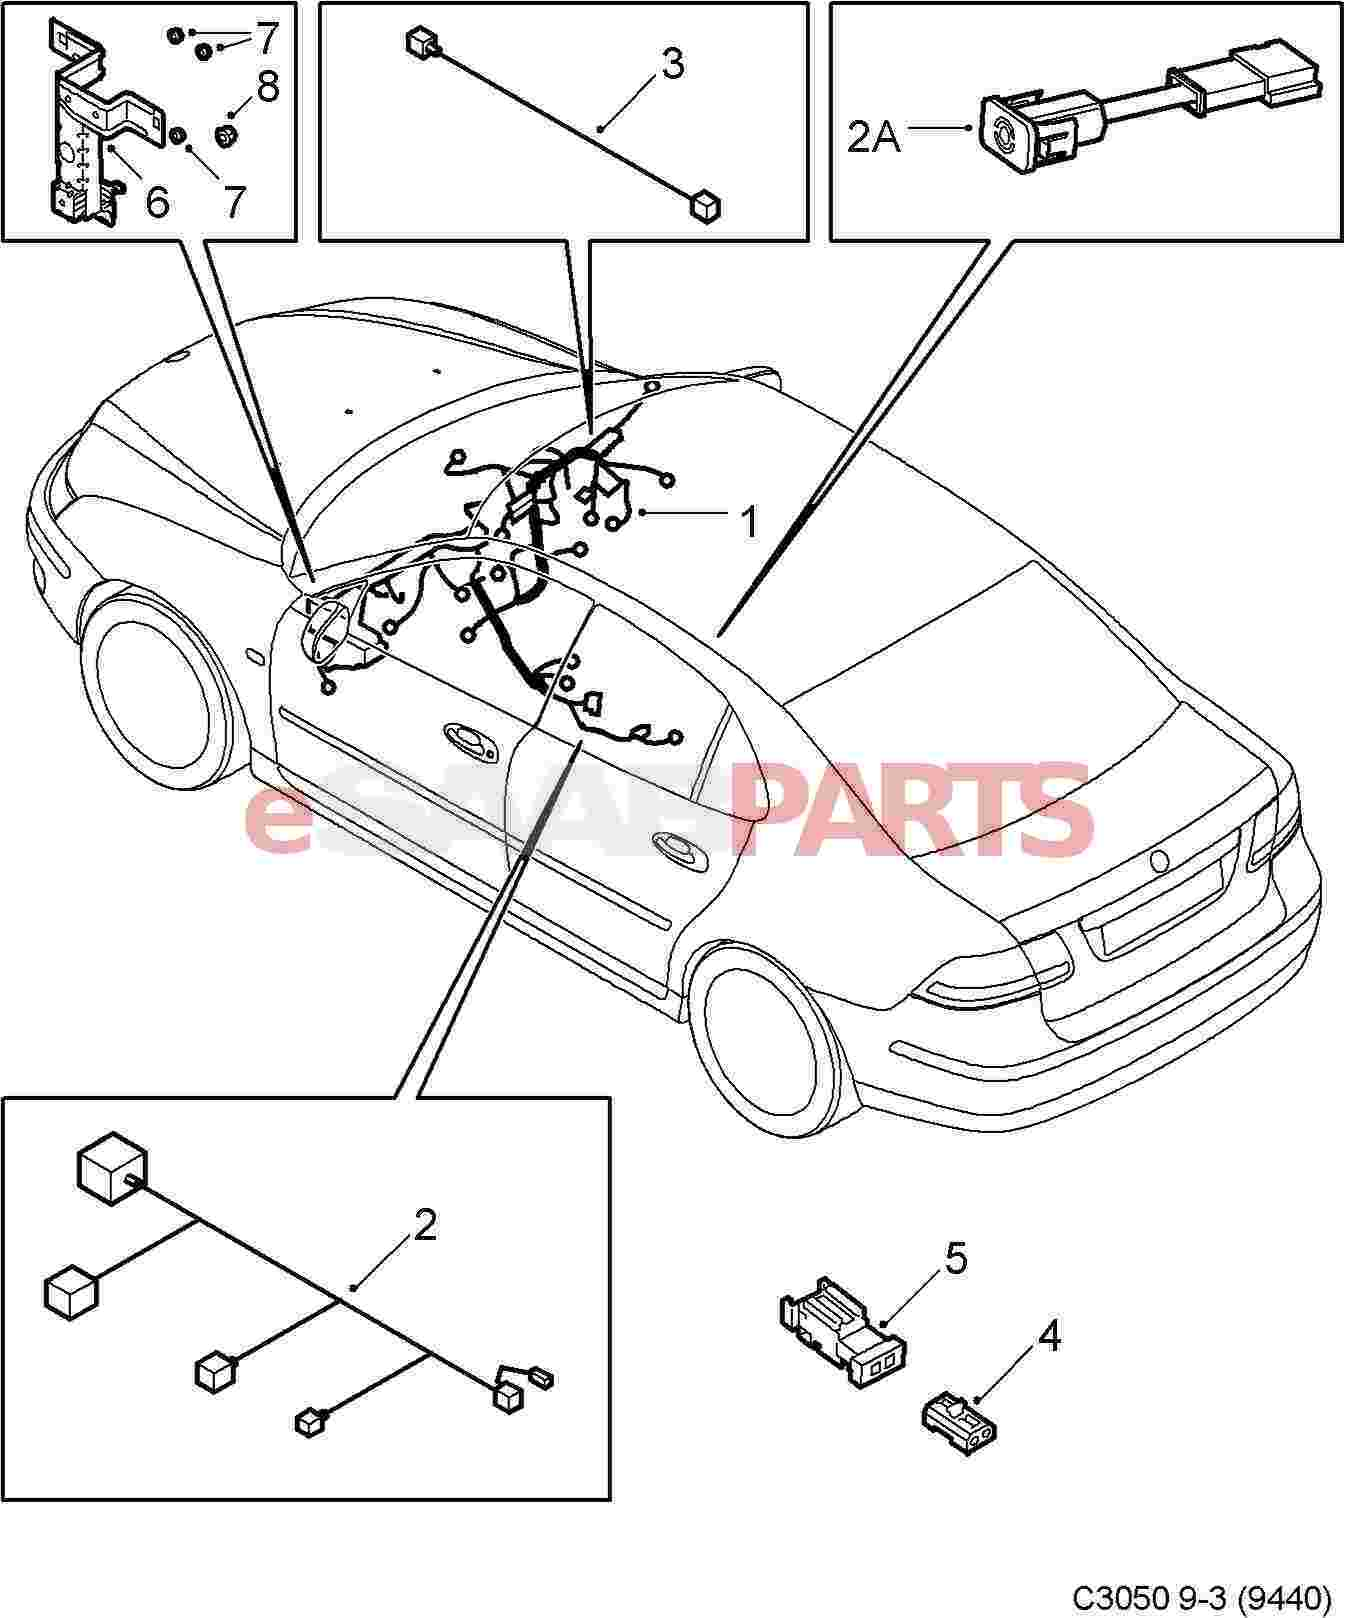 Wiring Diagram Saab 9 3 Speakers